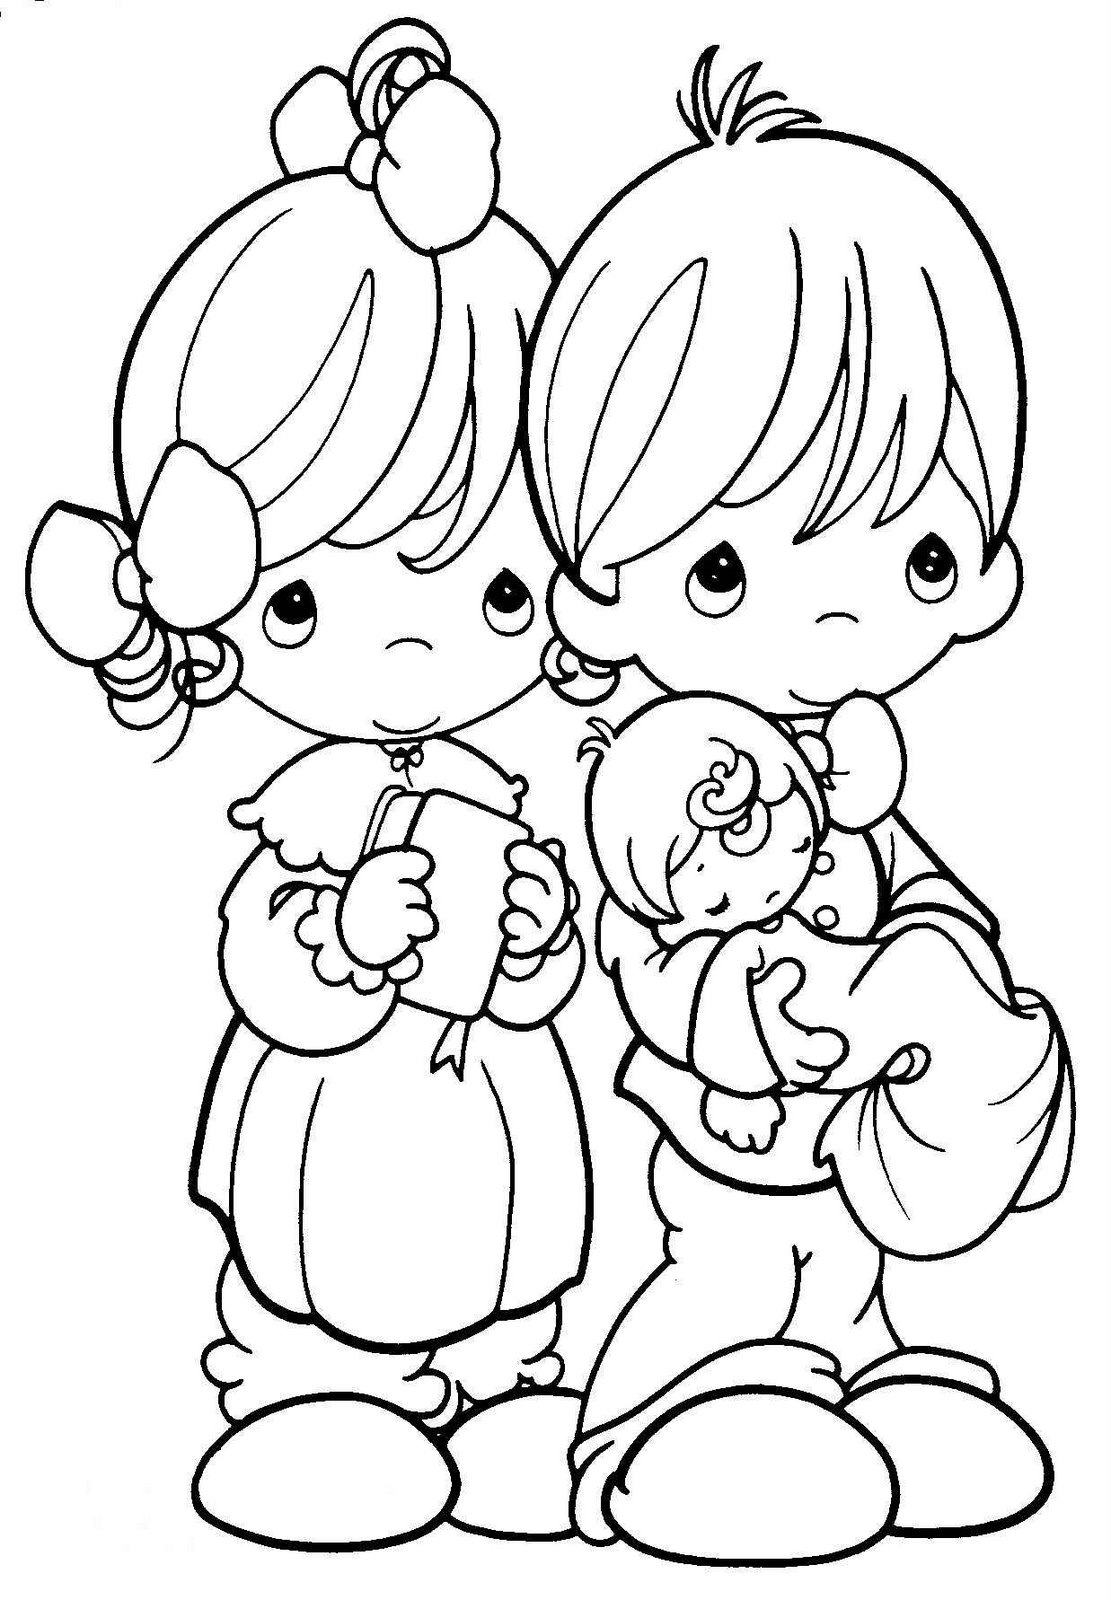 precious moments coloring books precious moments for love coloring pages gtgt disney precious moments books coloring